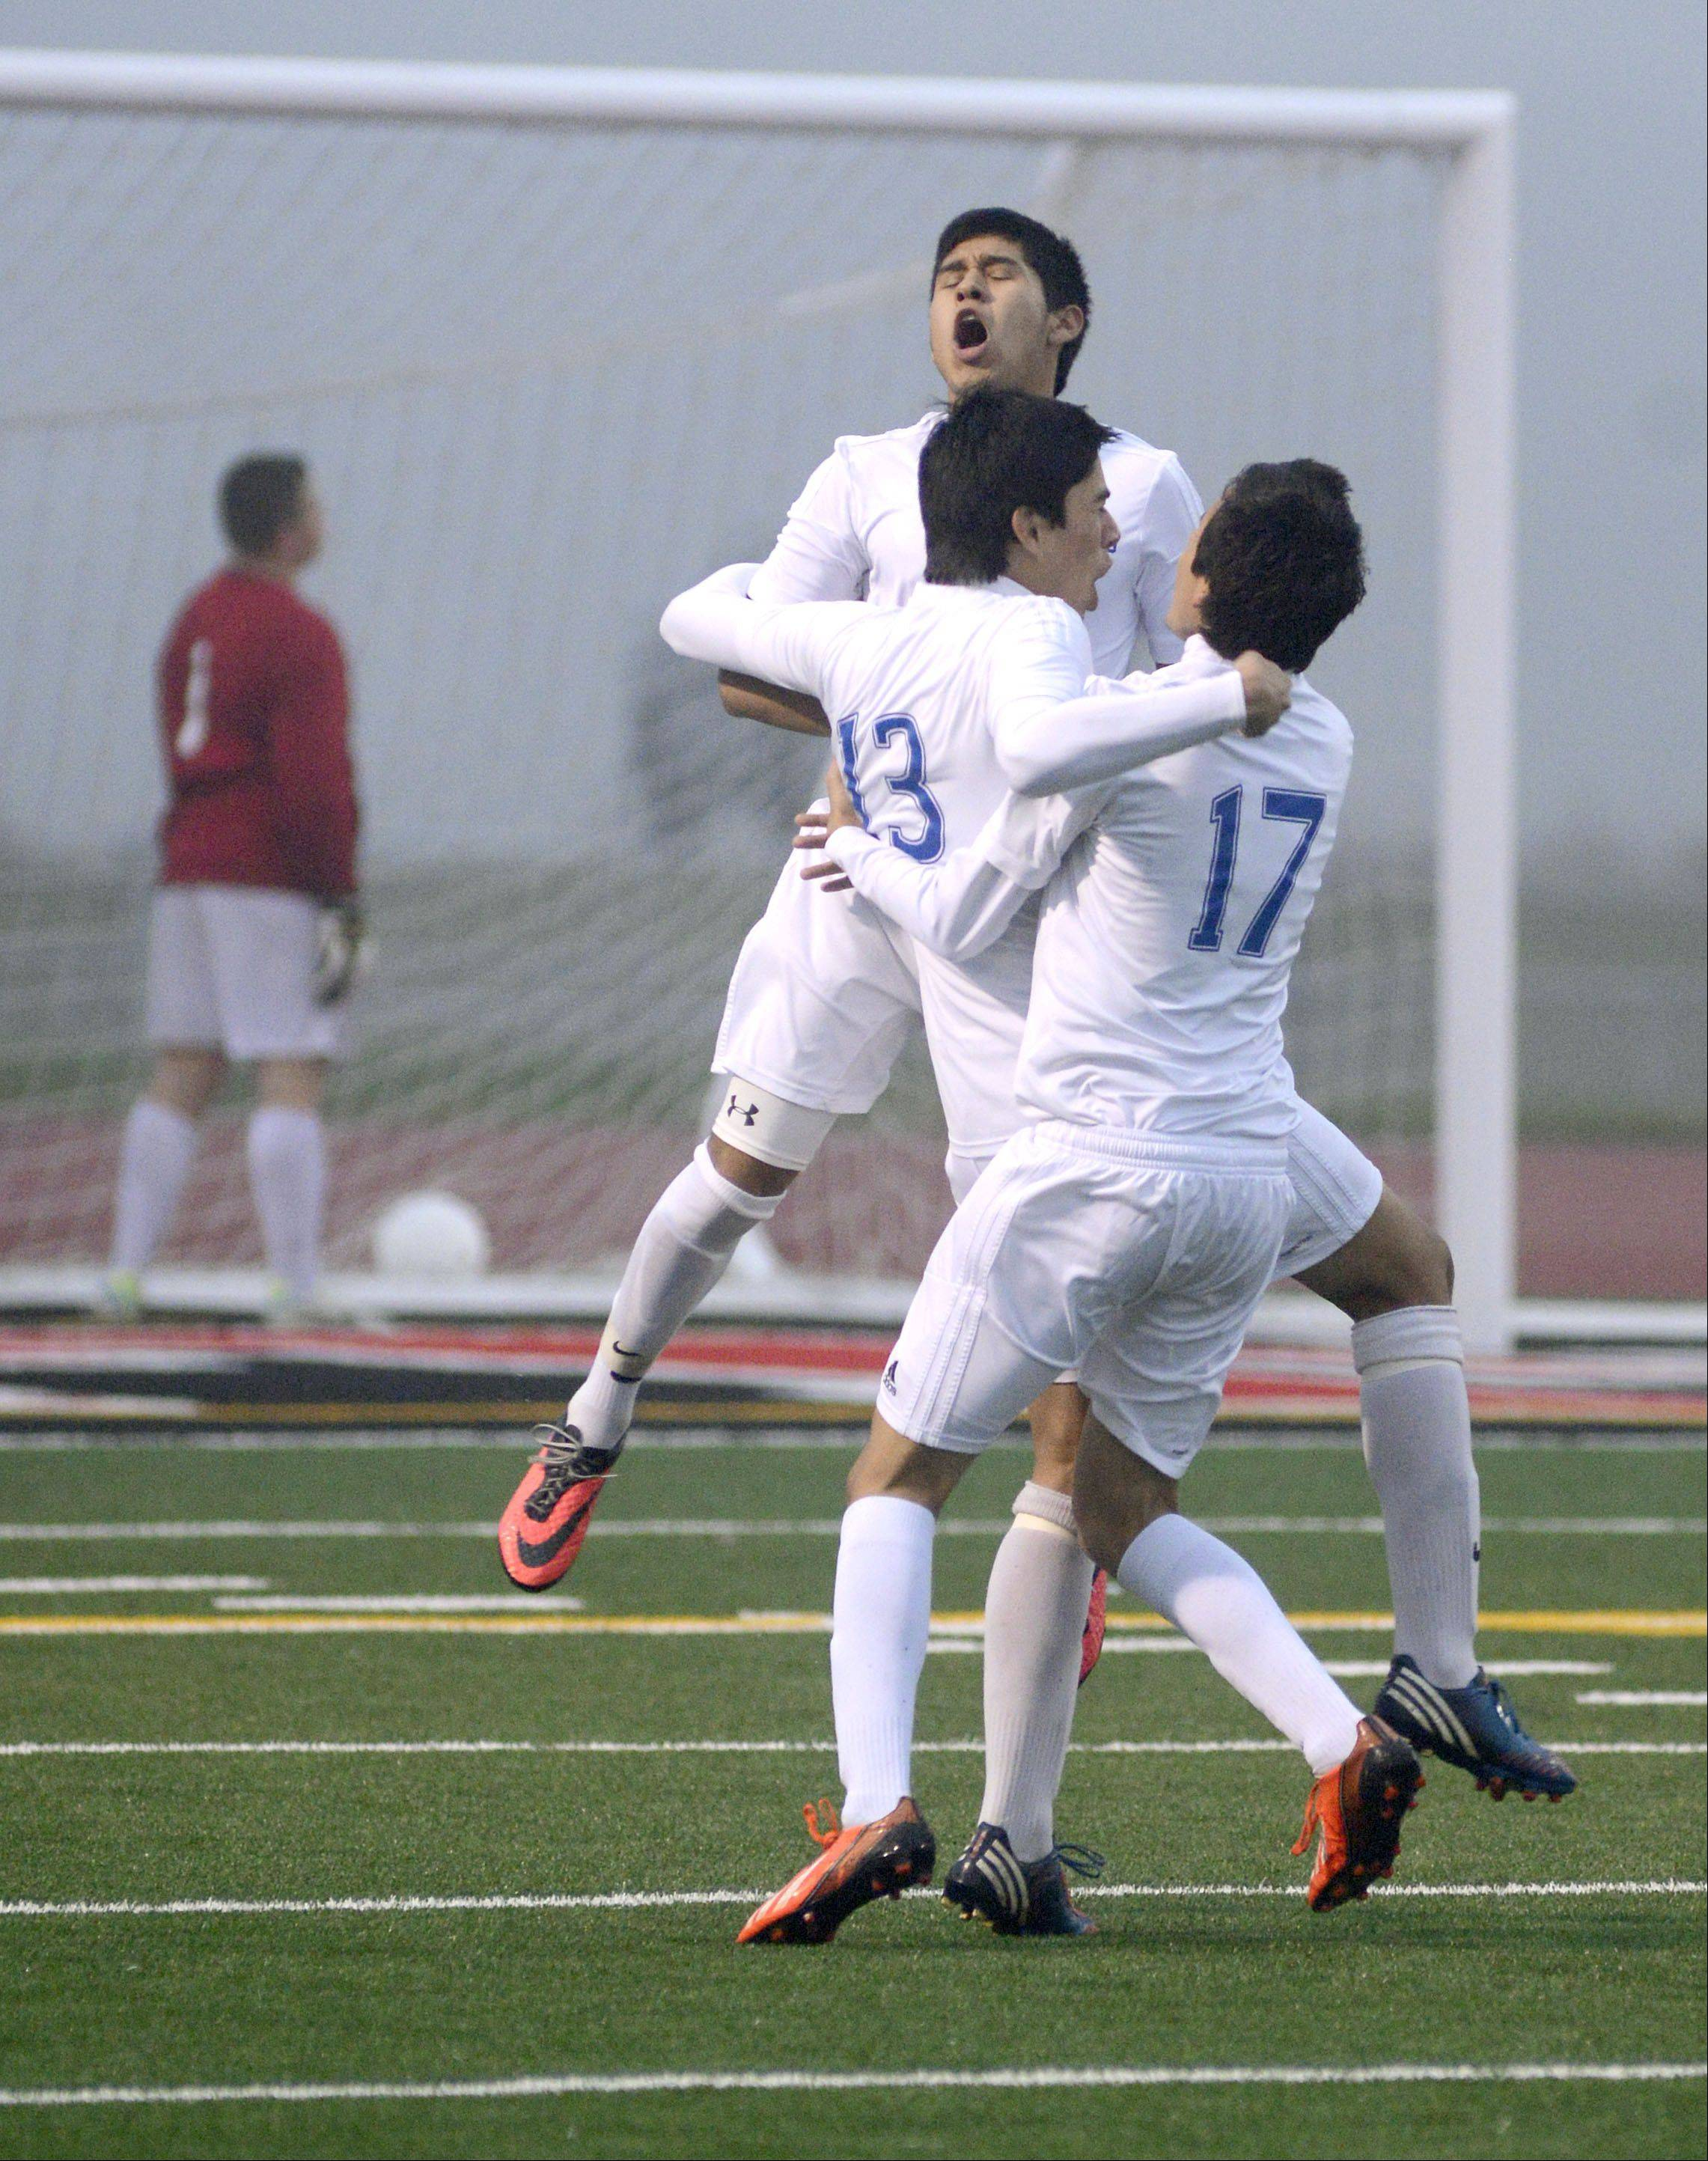 Larkin's Hector Mendoza (13) is congratulated by teammates Gonsalo Garcia, left, and Fredy Jungo after scoring the first goal against Hononegah during Wednesday's Huntley sectional soccer semifinals.